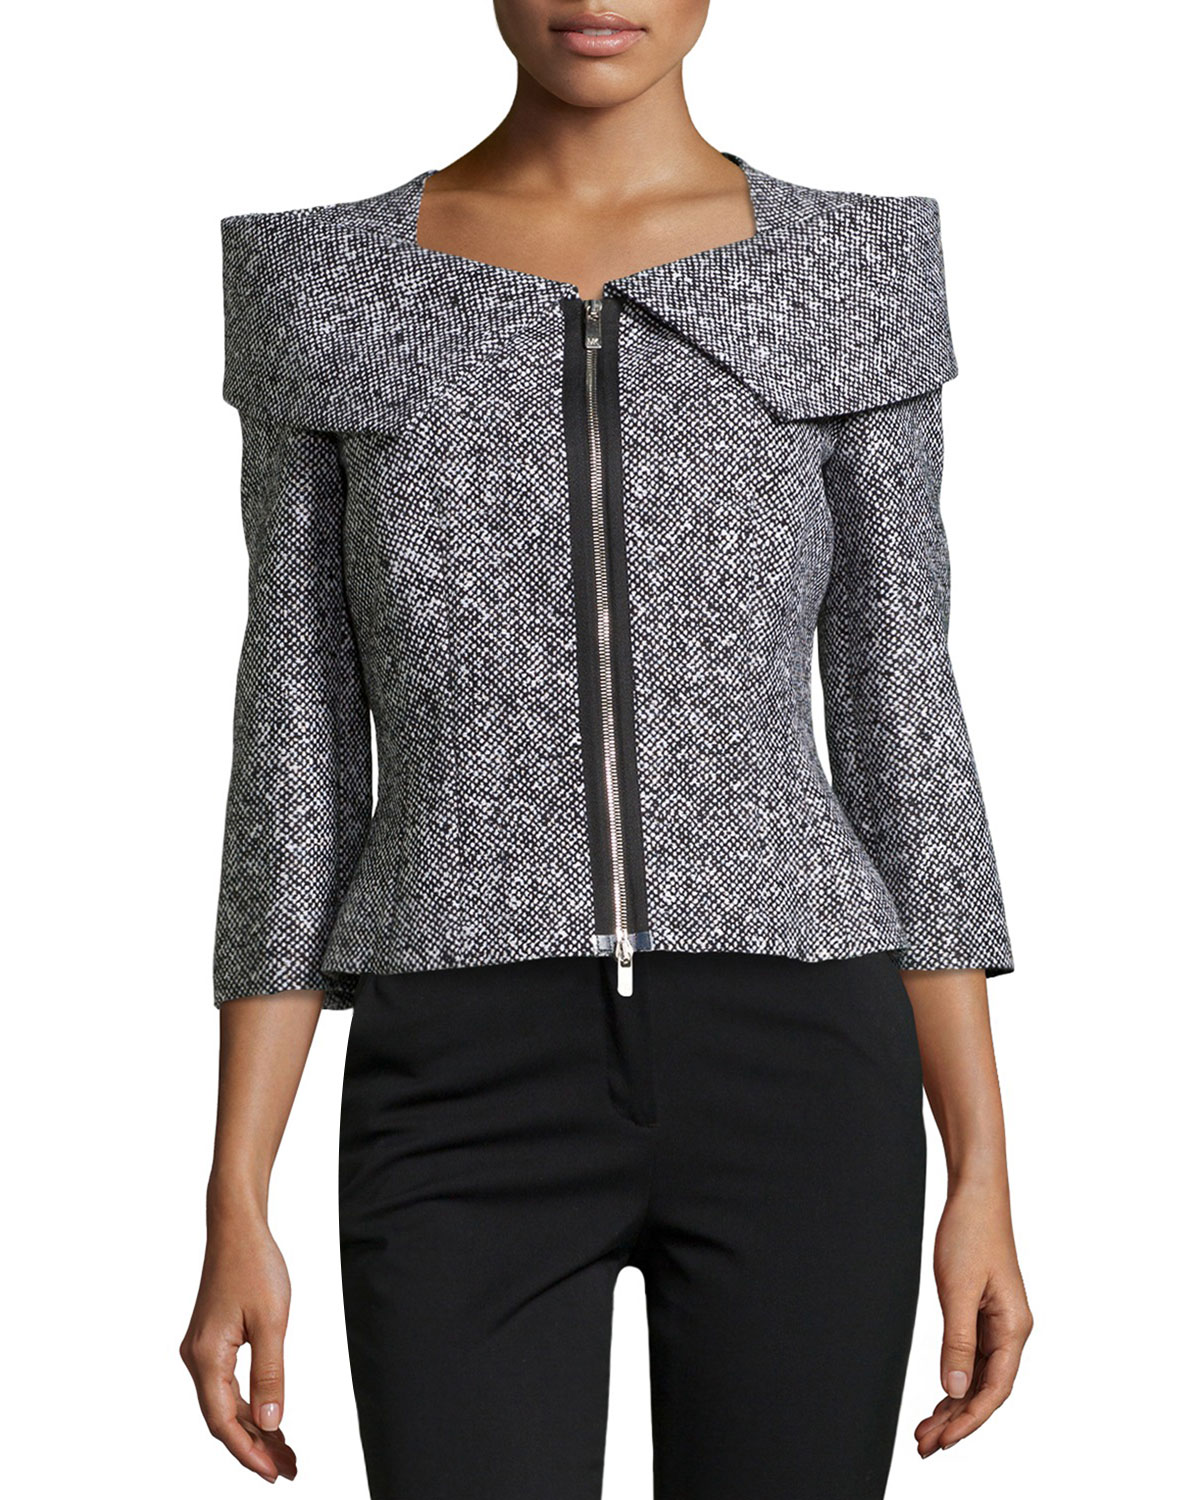 Michael Kors Zip Front Tweed Jacket